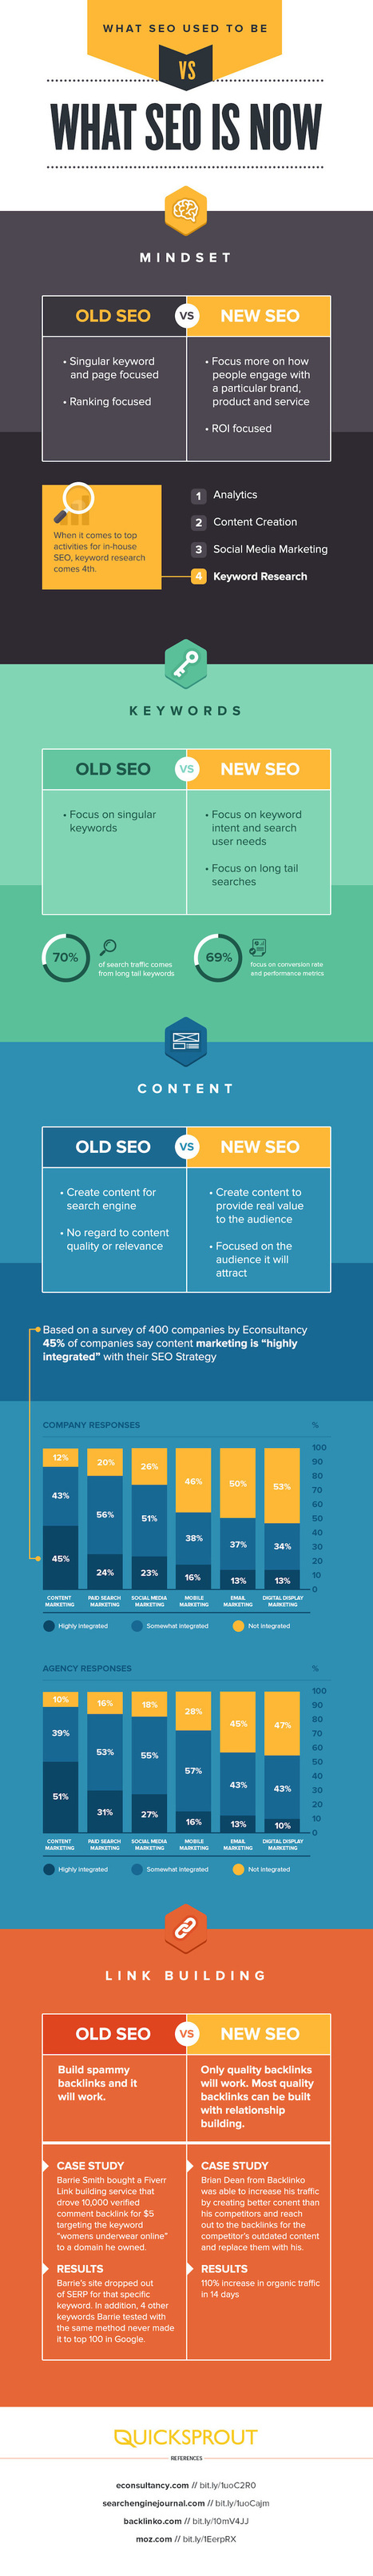 Old SEO vs New SEO: The New Way Must Replace the Old Way | ViniTolentino | Scoop.it